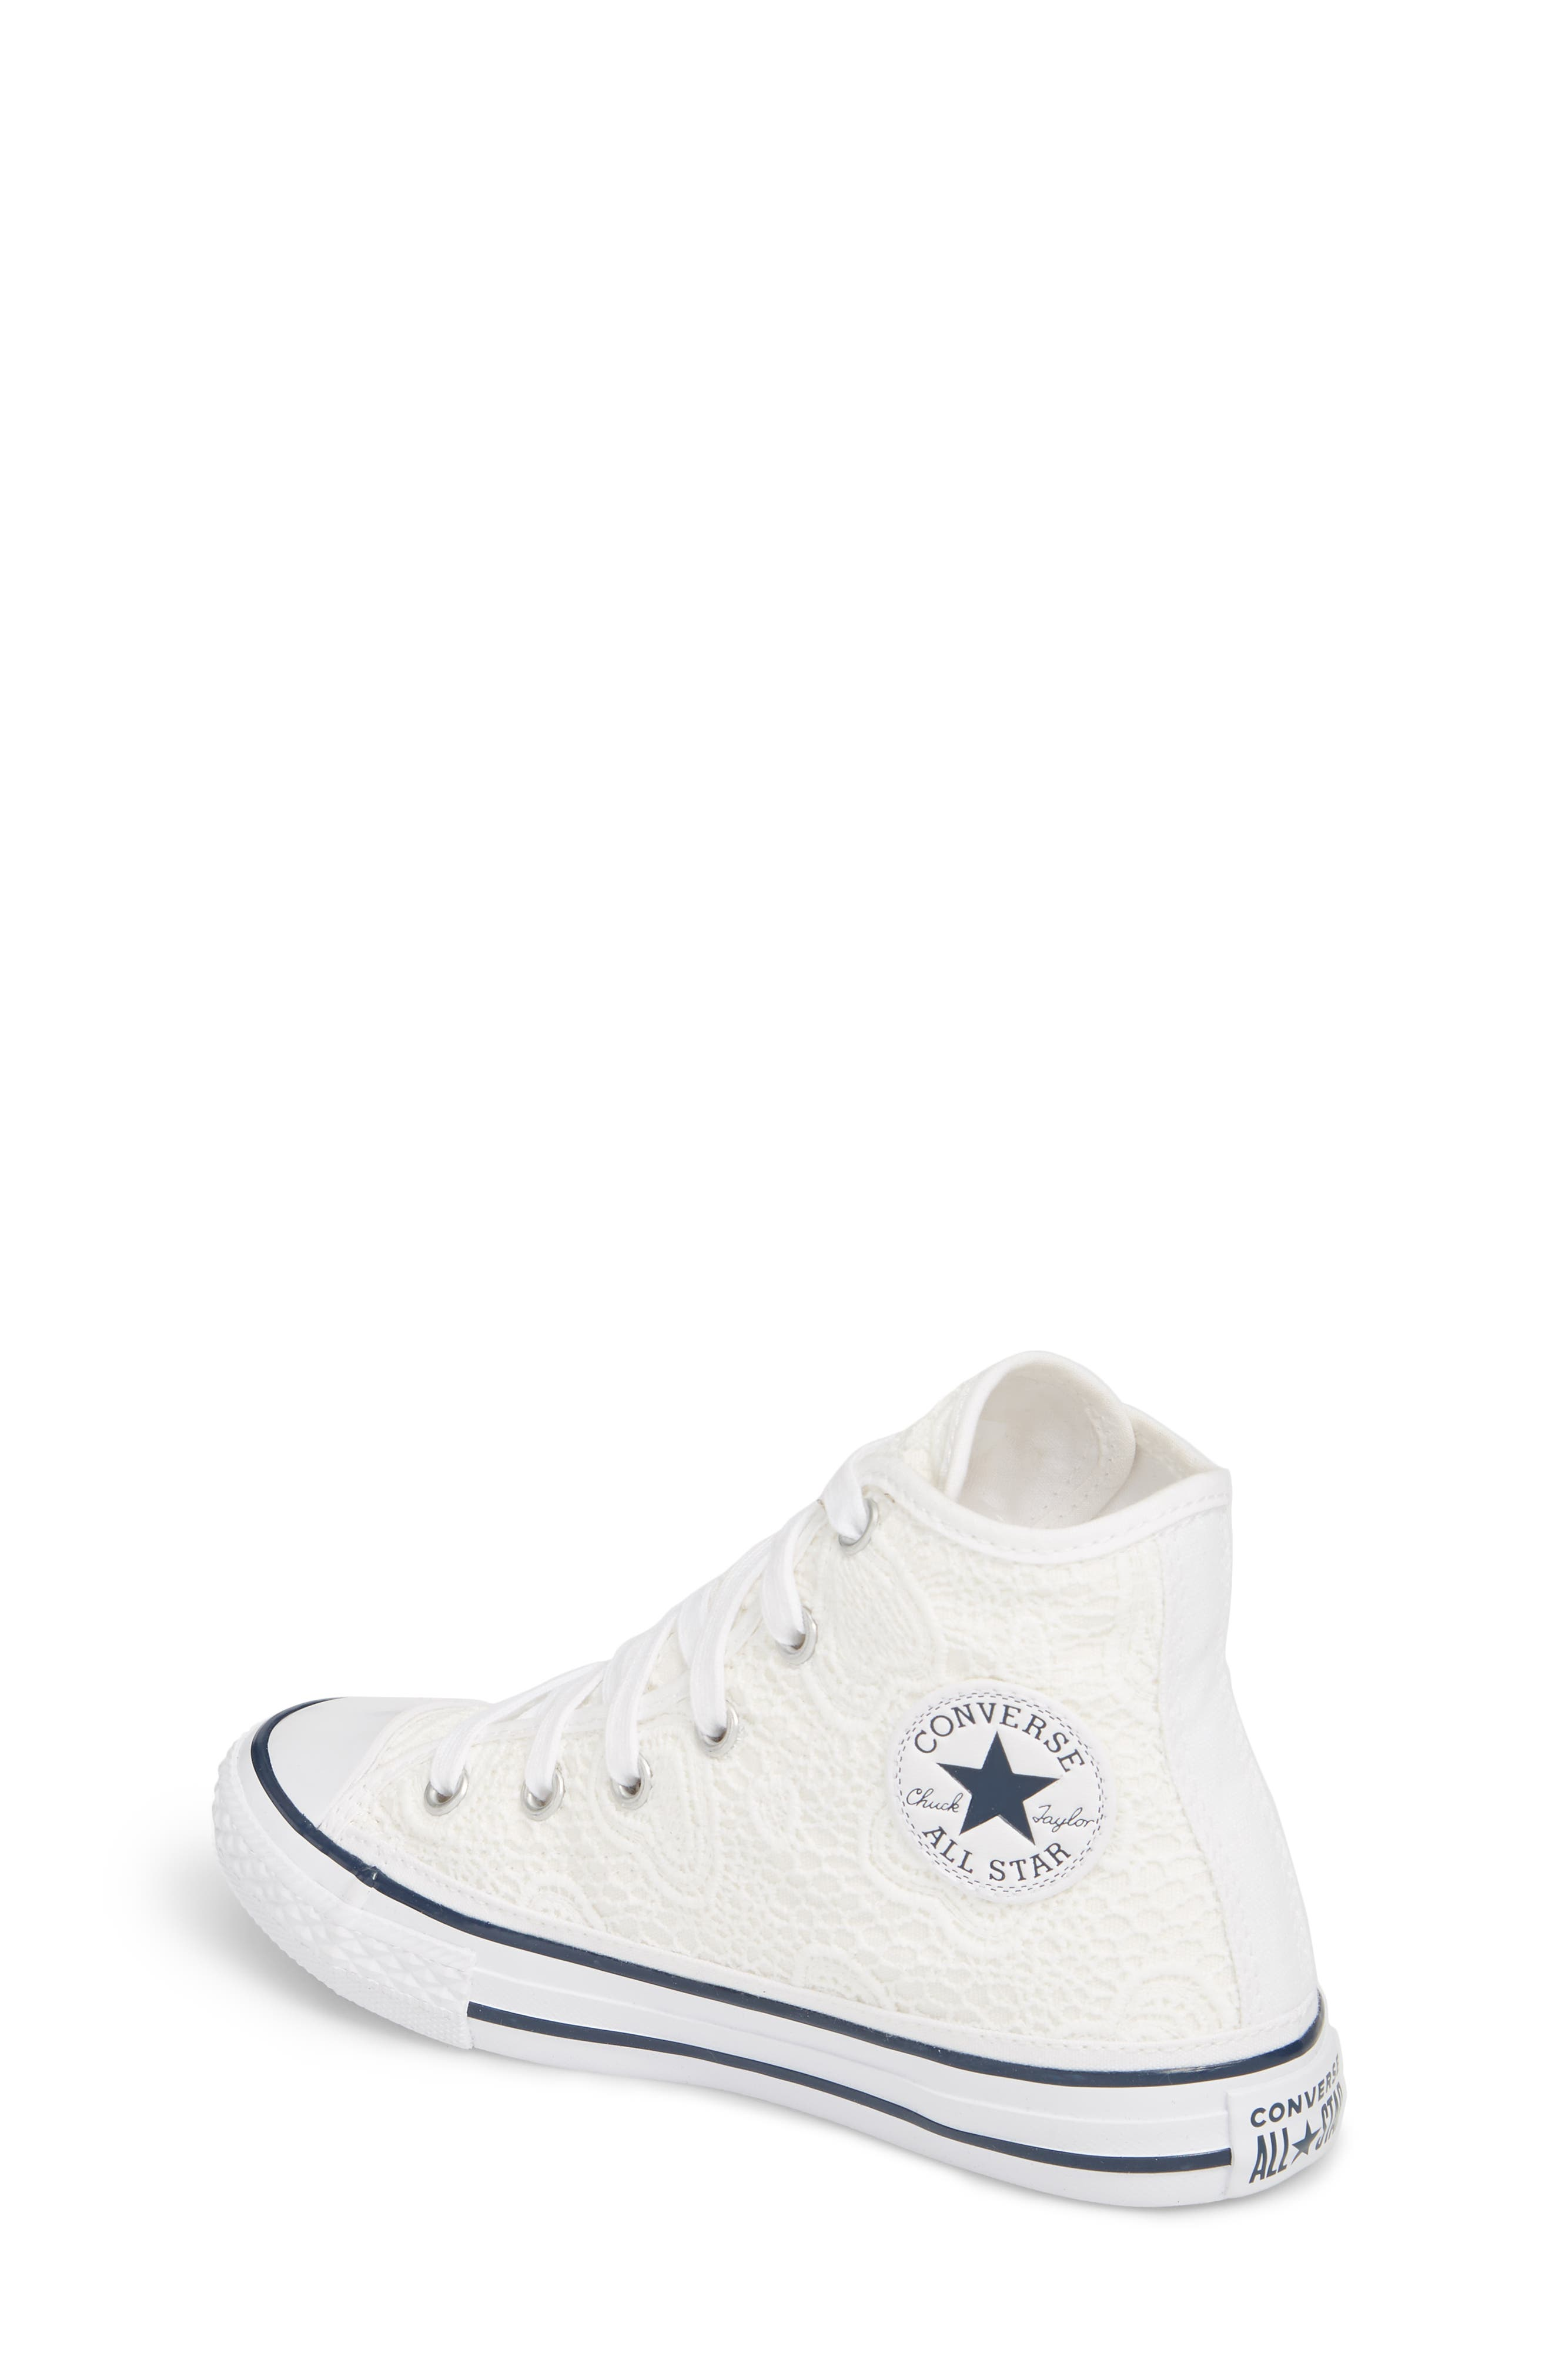 Chuck Taylor<sup>®</sup> All Star<sup>®</sup> Crochet High Top Sneaker,                             Alternate thumbnail 2, color,                             White